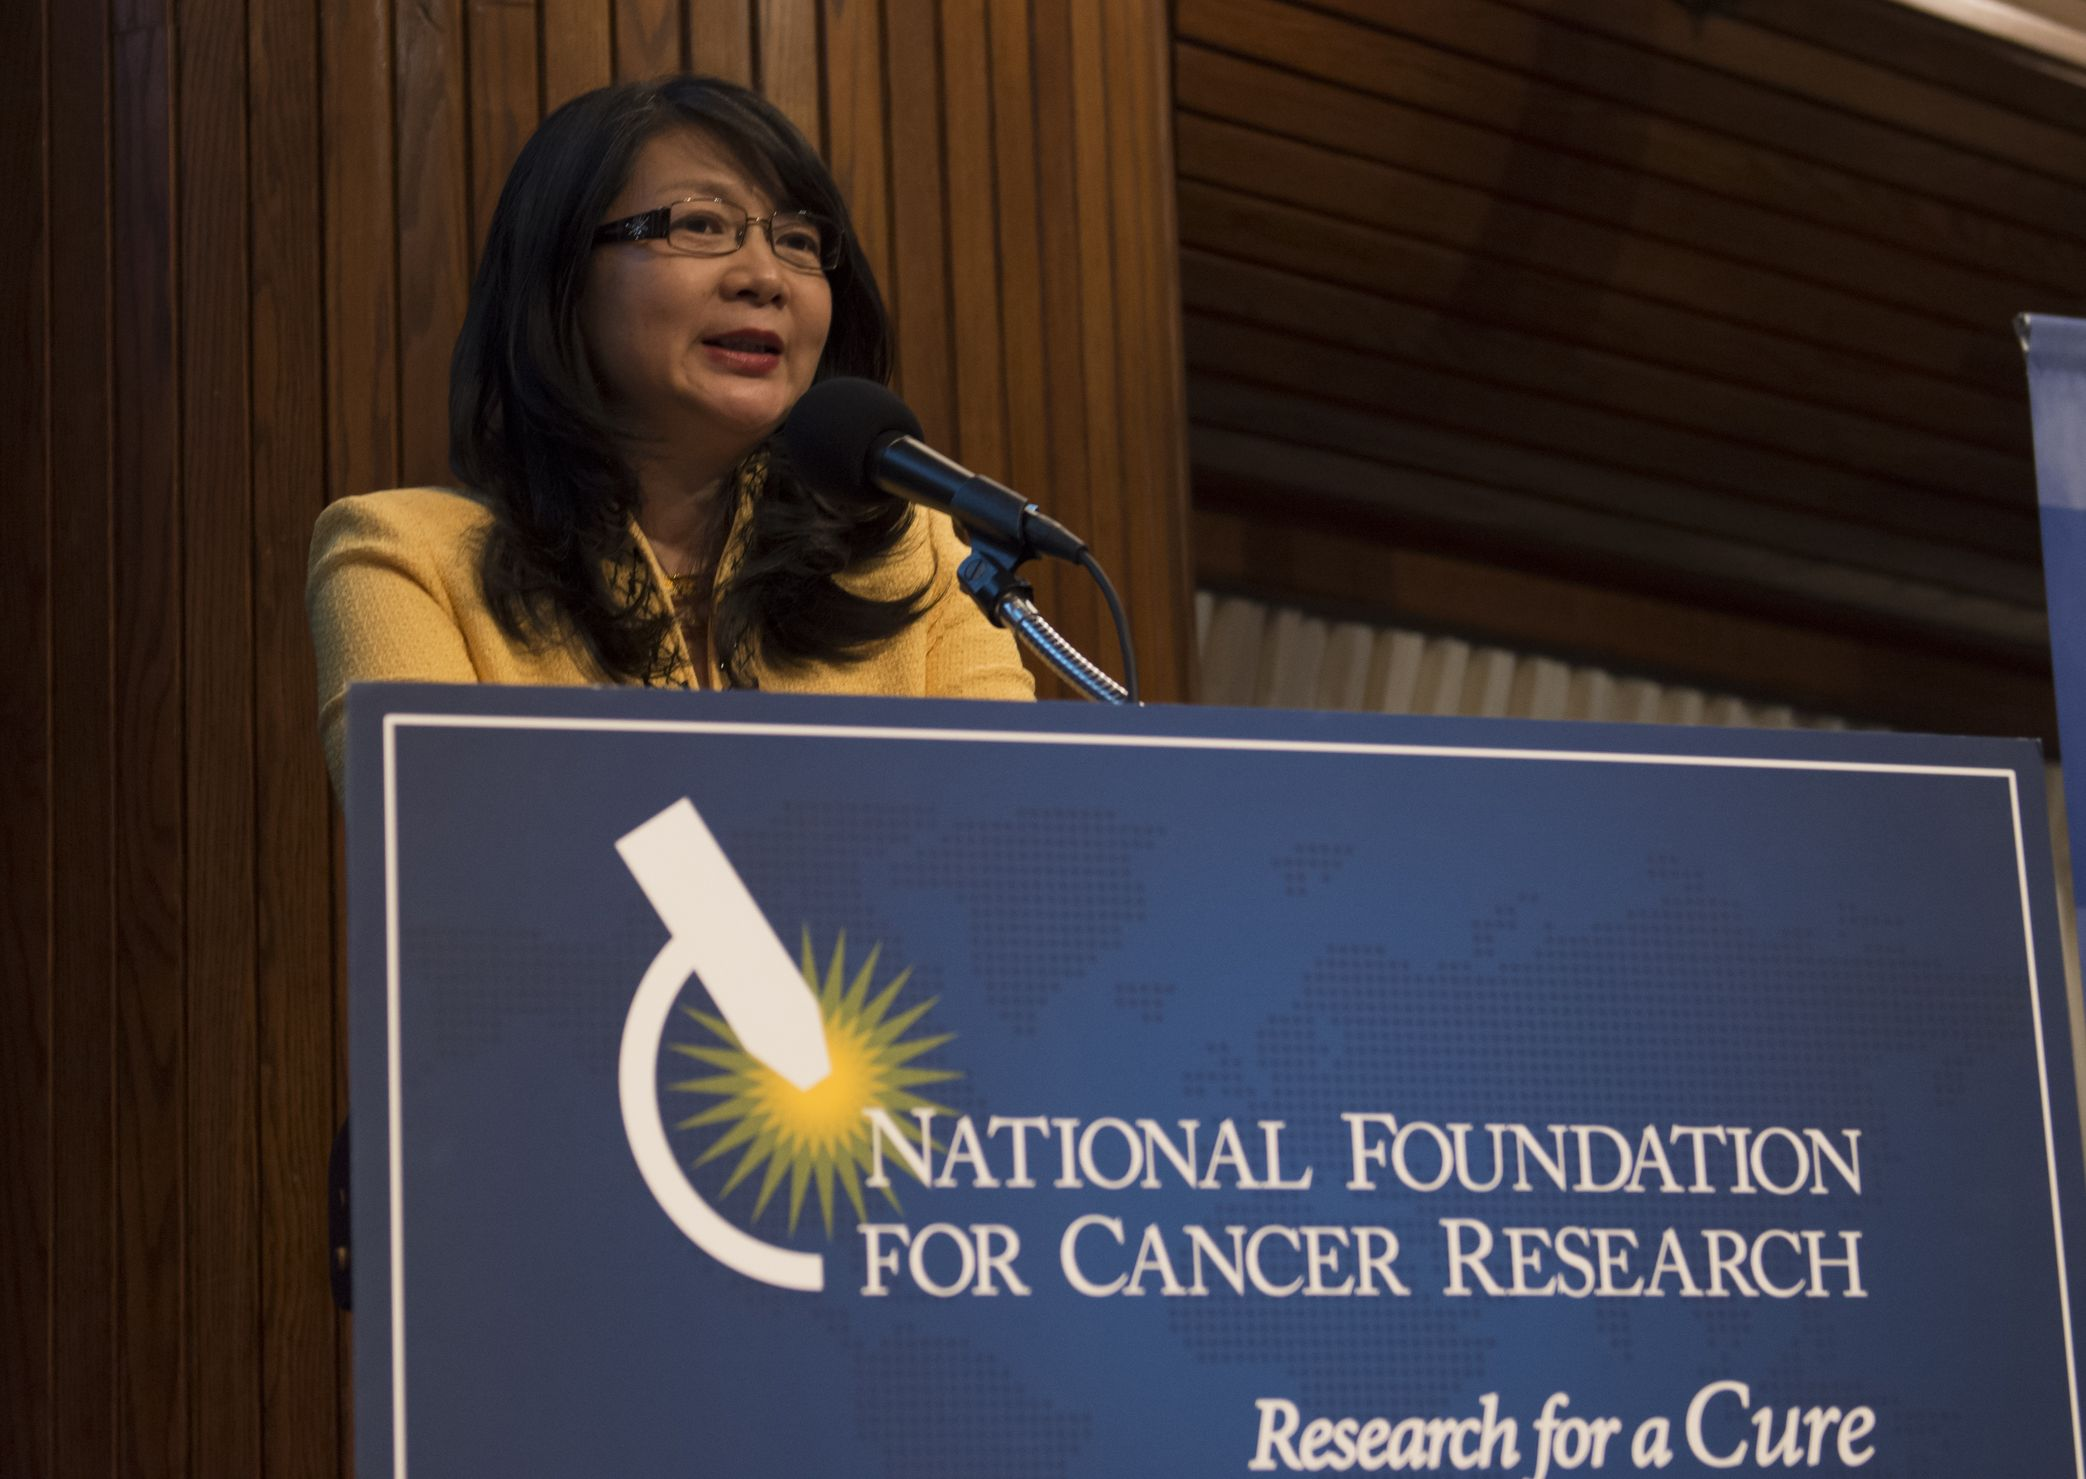 """As NFCR President stated in her closing address, """"What a remarkable evening!"""""""